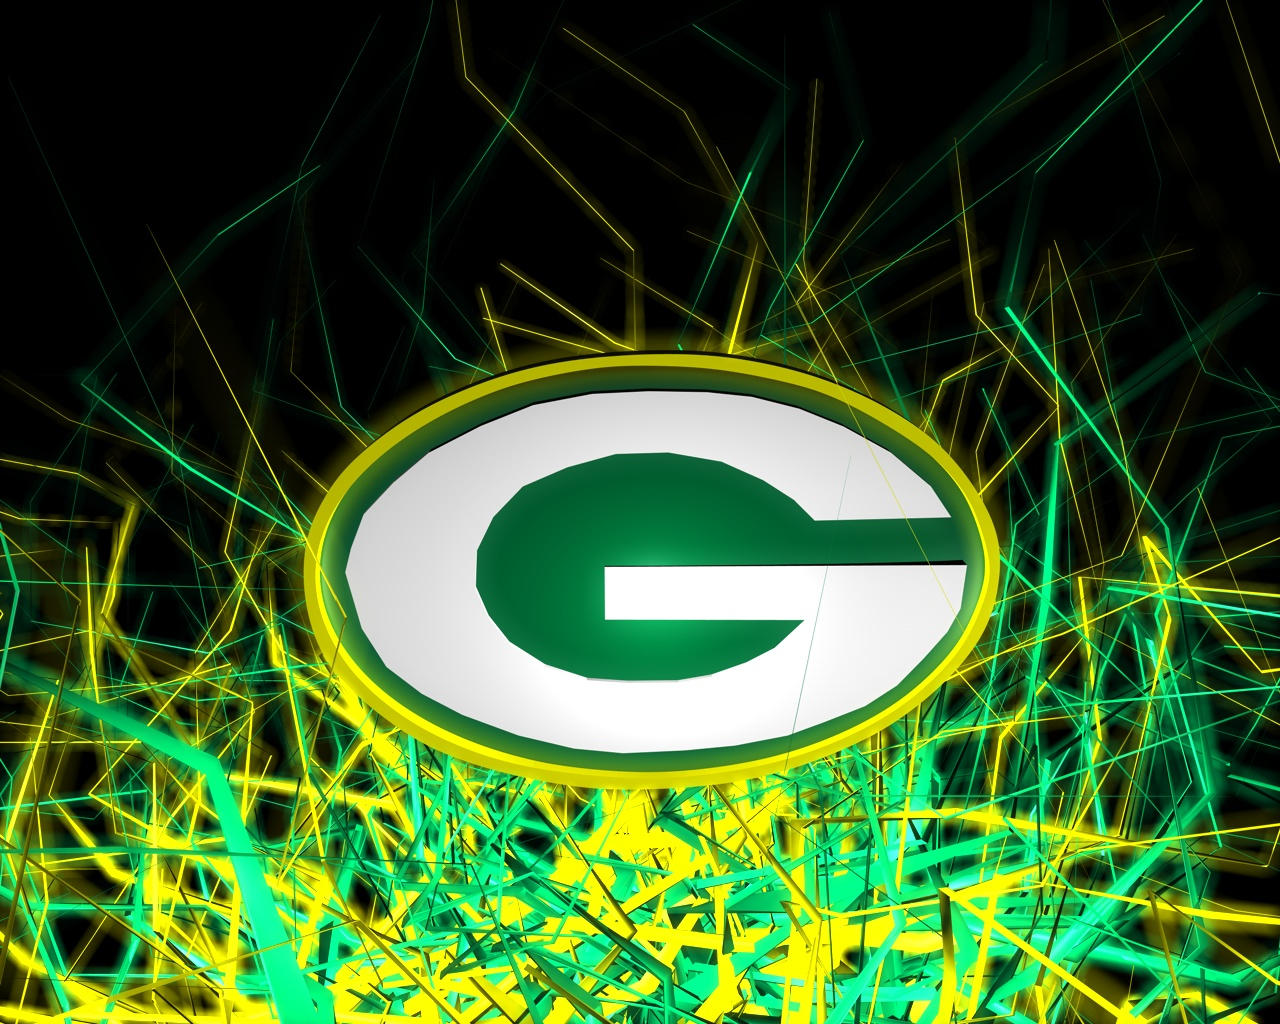 Green Bay Packers Logo by socket478 on DeviantArt